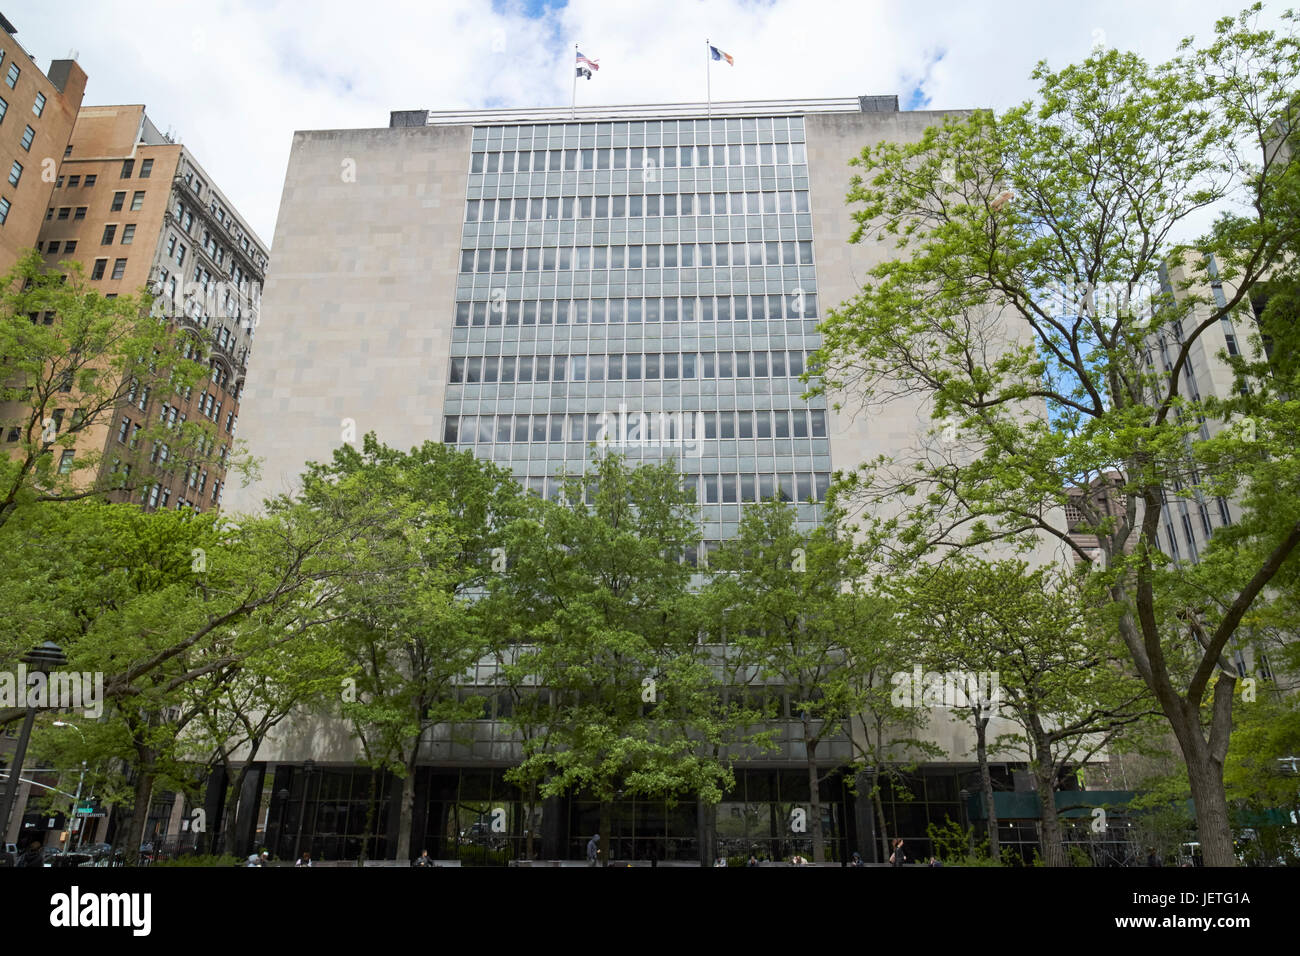 manhattan civil courts building from collect pond park New York City USA - Stock Image